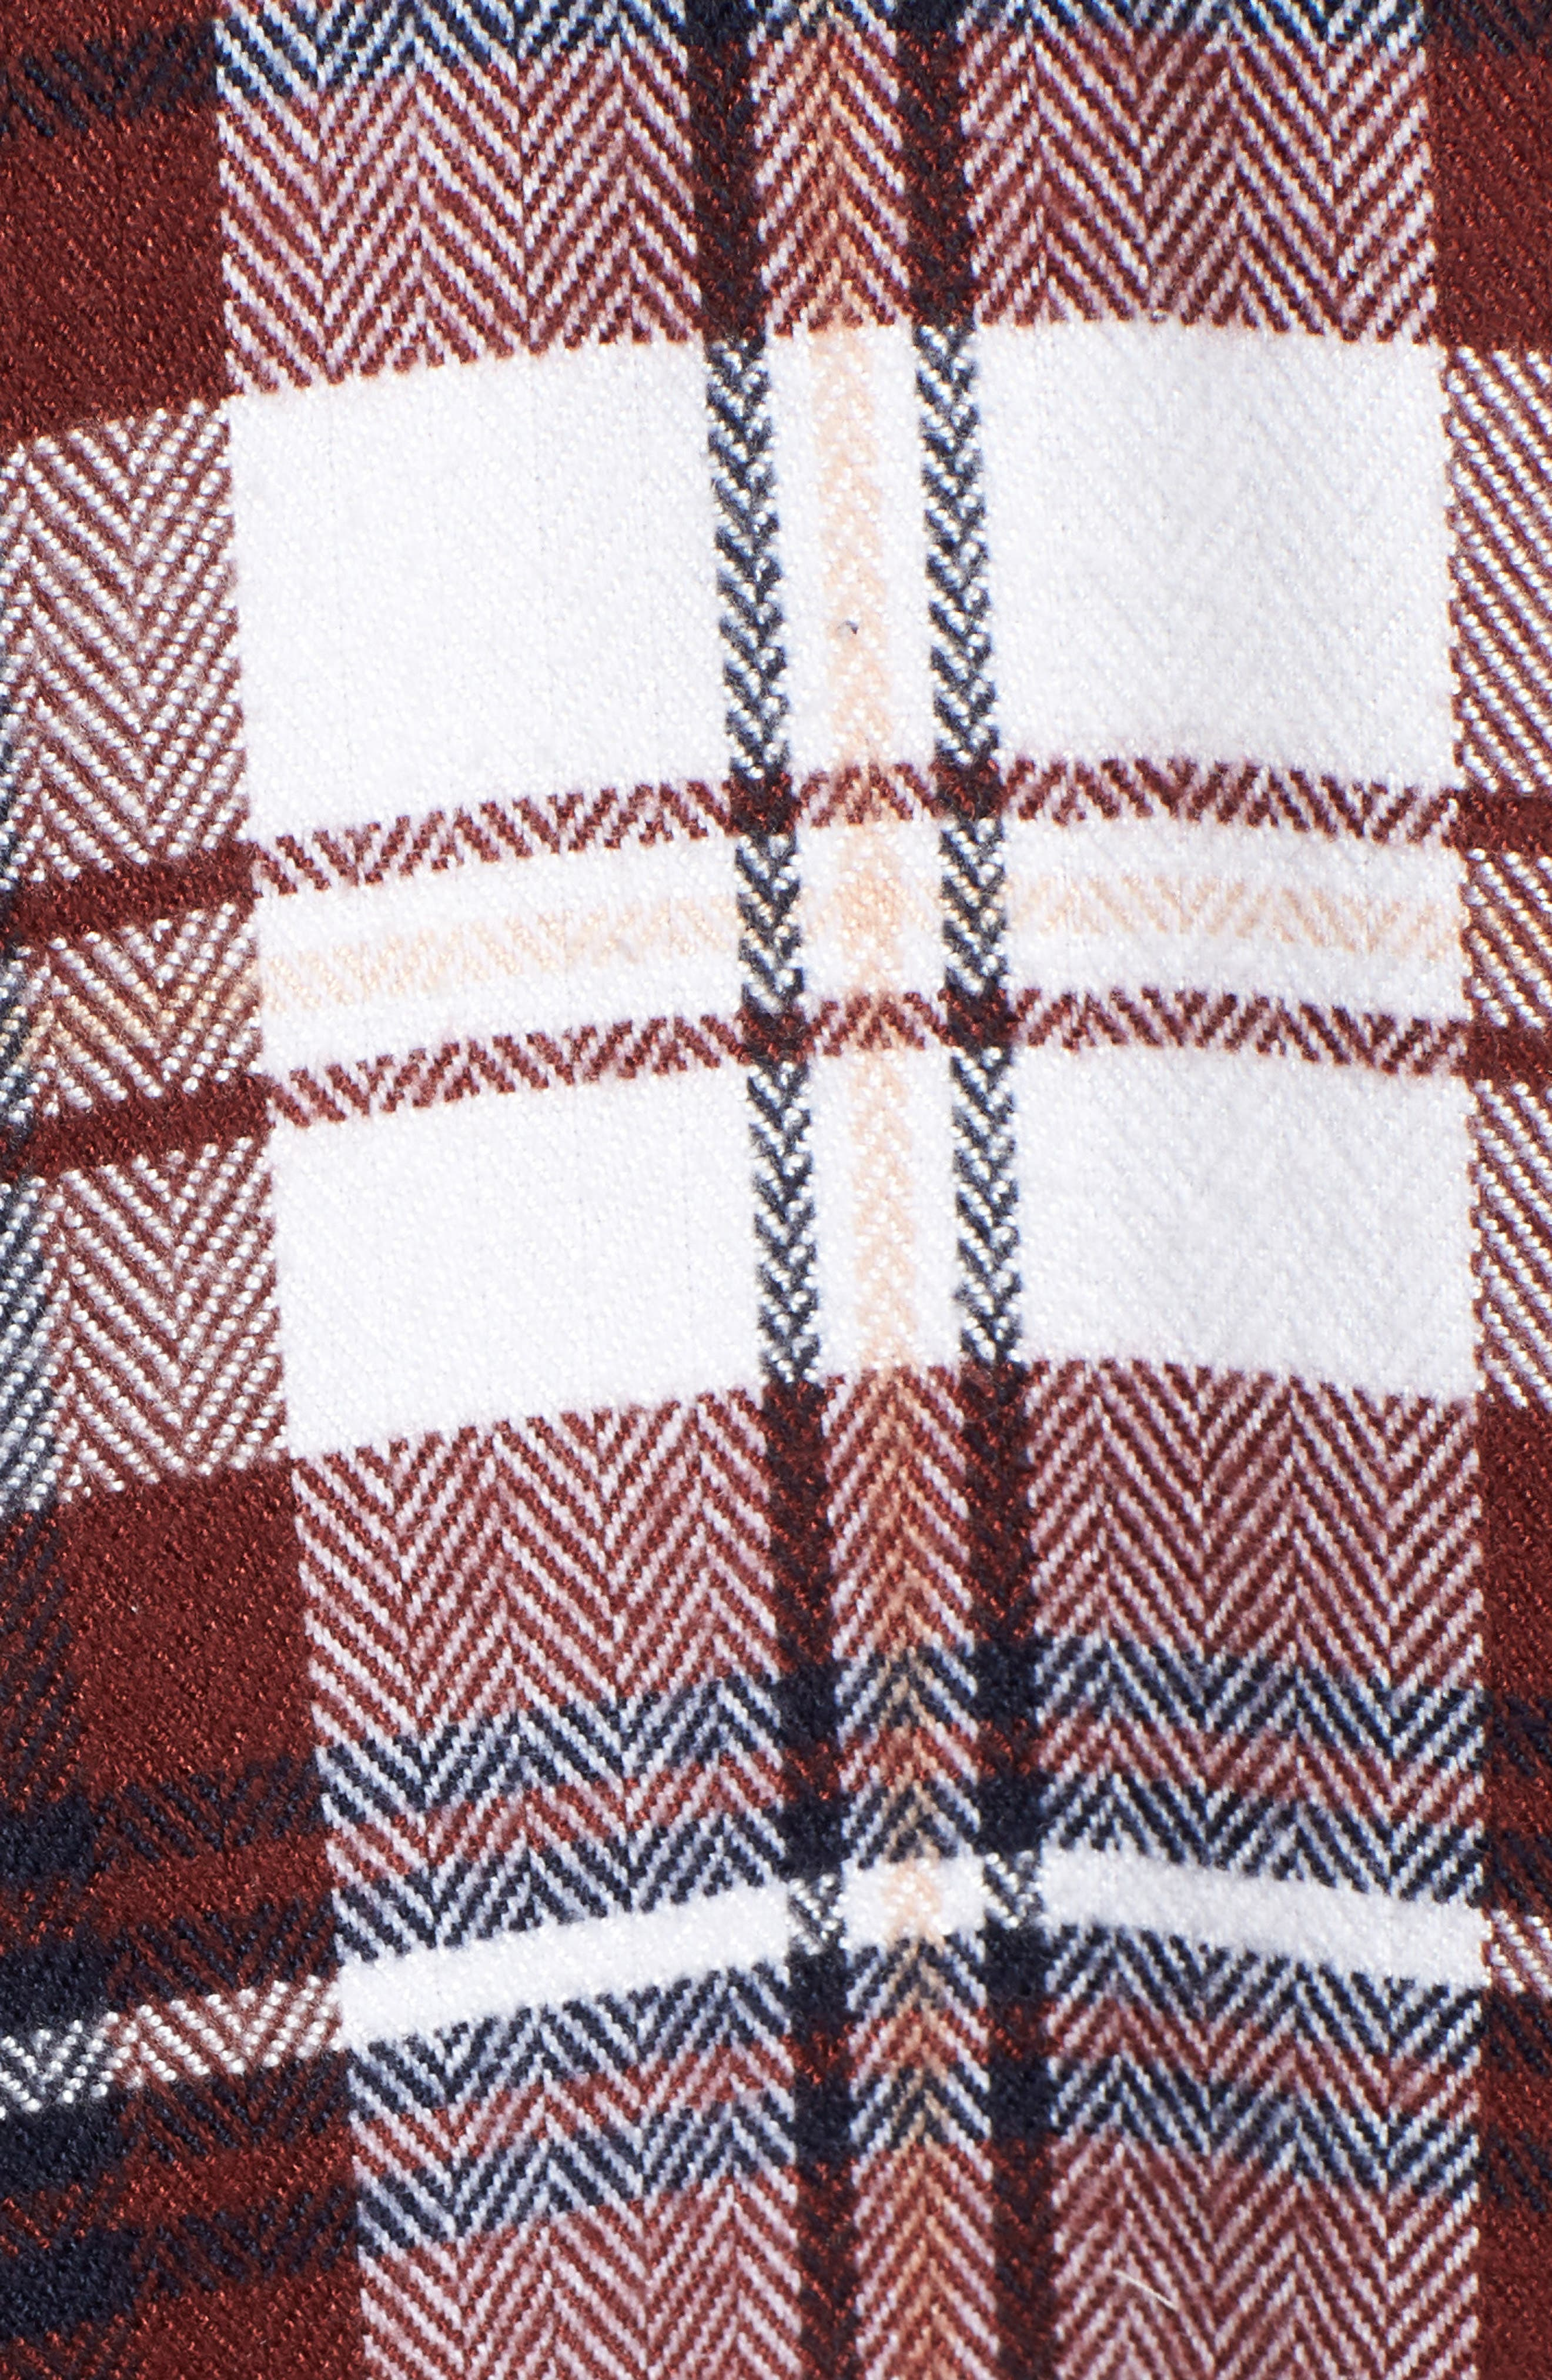 Plaid Flannel Tunic,                             Alternate thumbnail 5, color,                             IVORY CAMEL PLAID